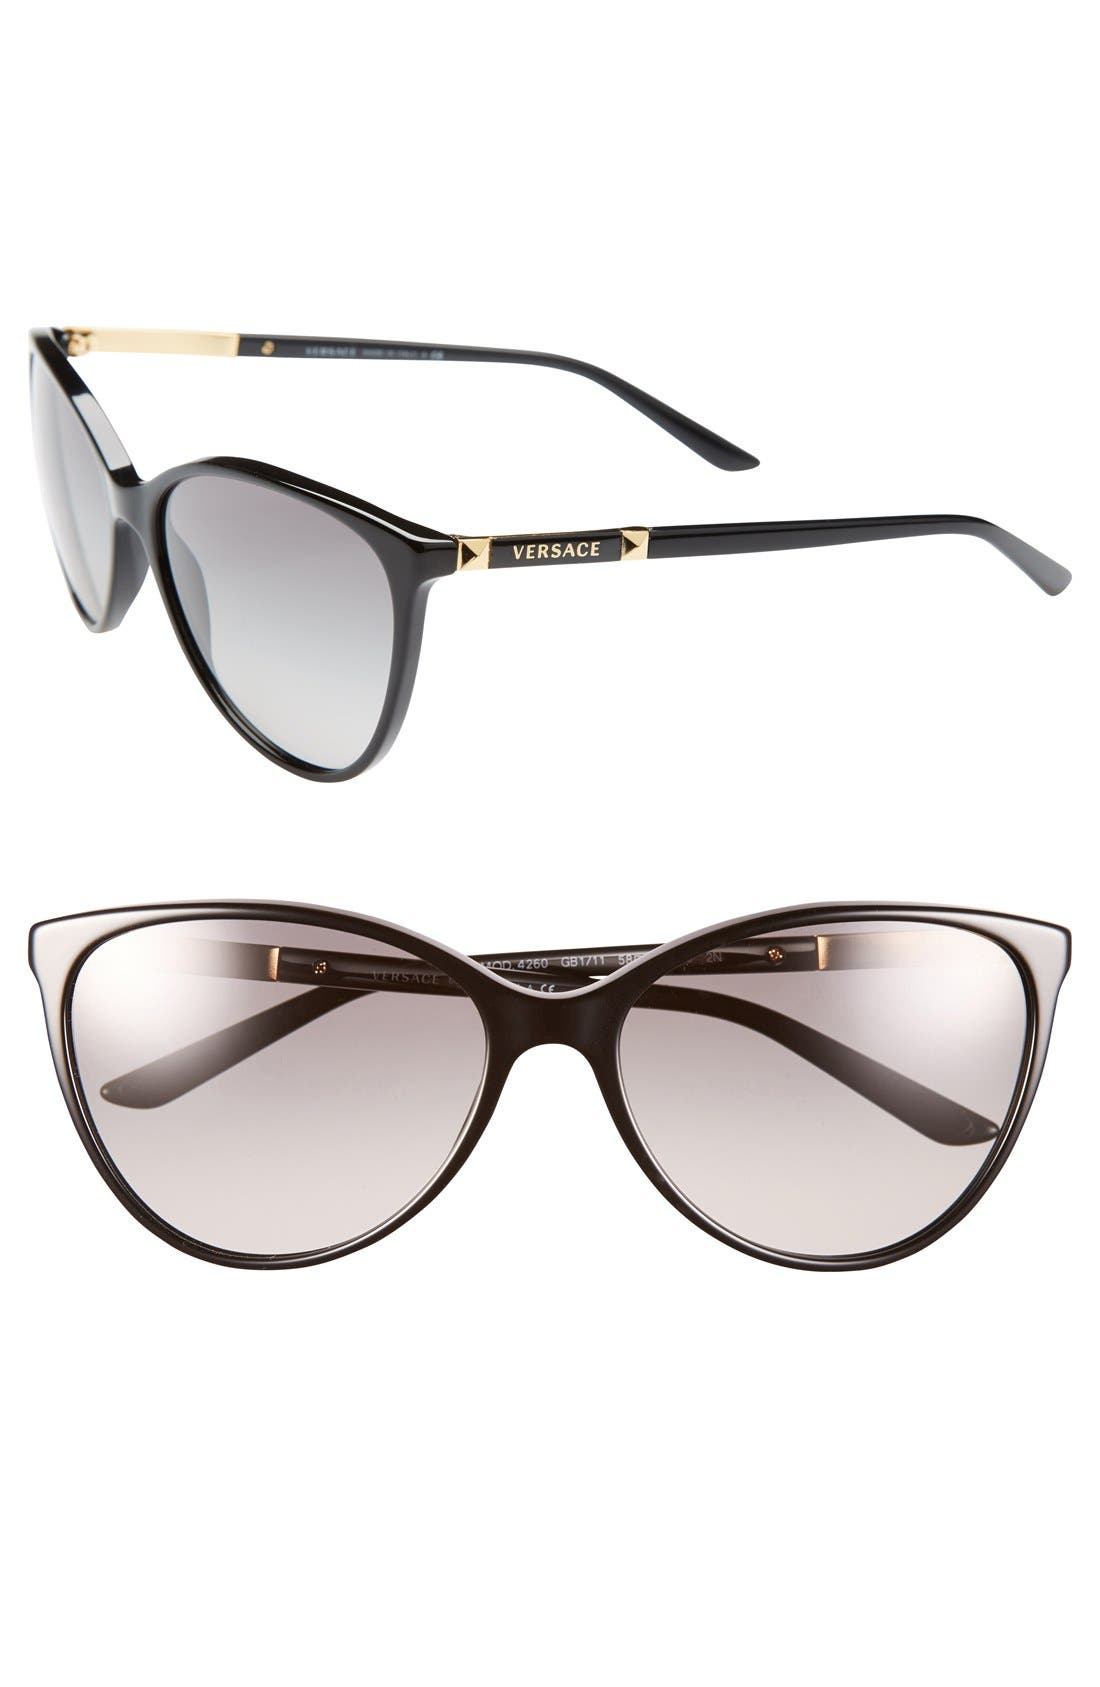 Main Image - Versace 'Pilot' 58mm Sunglasses